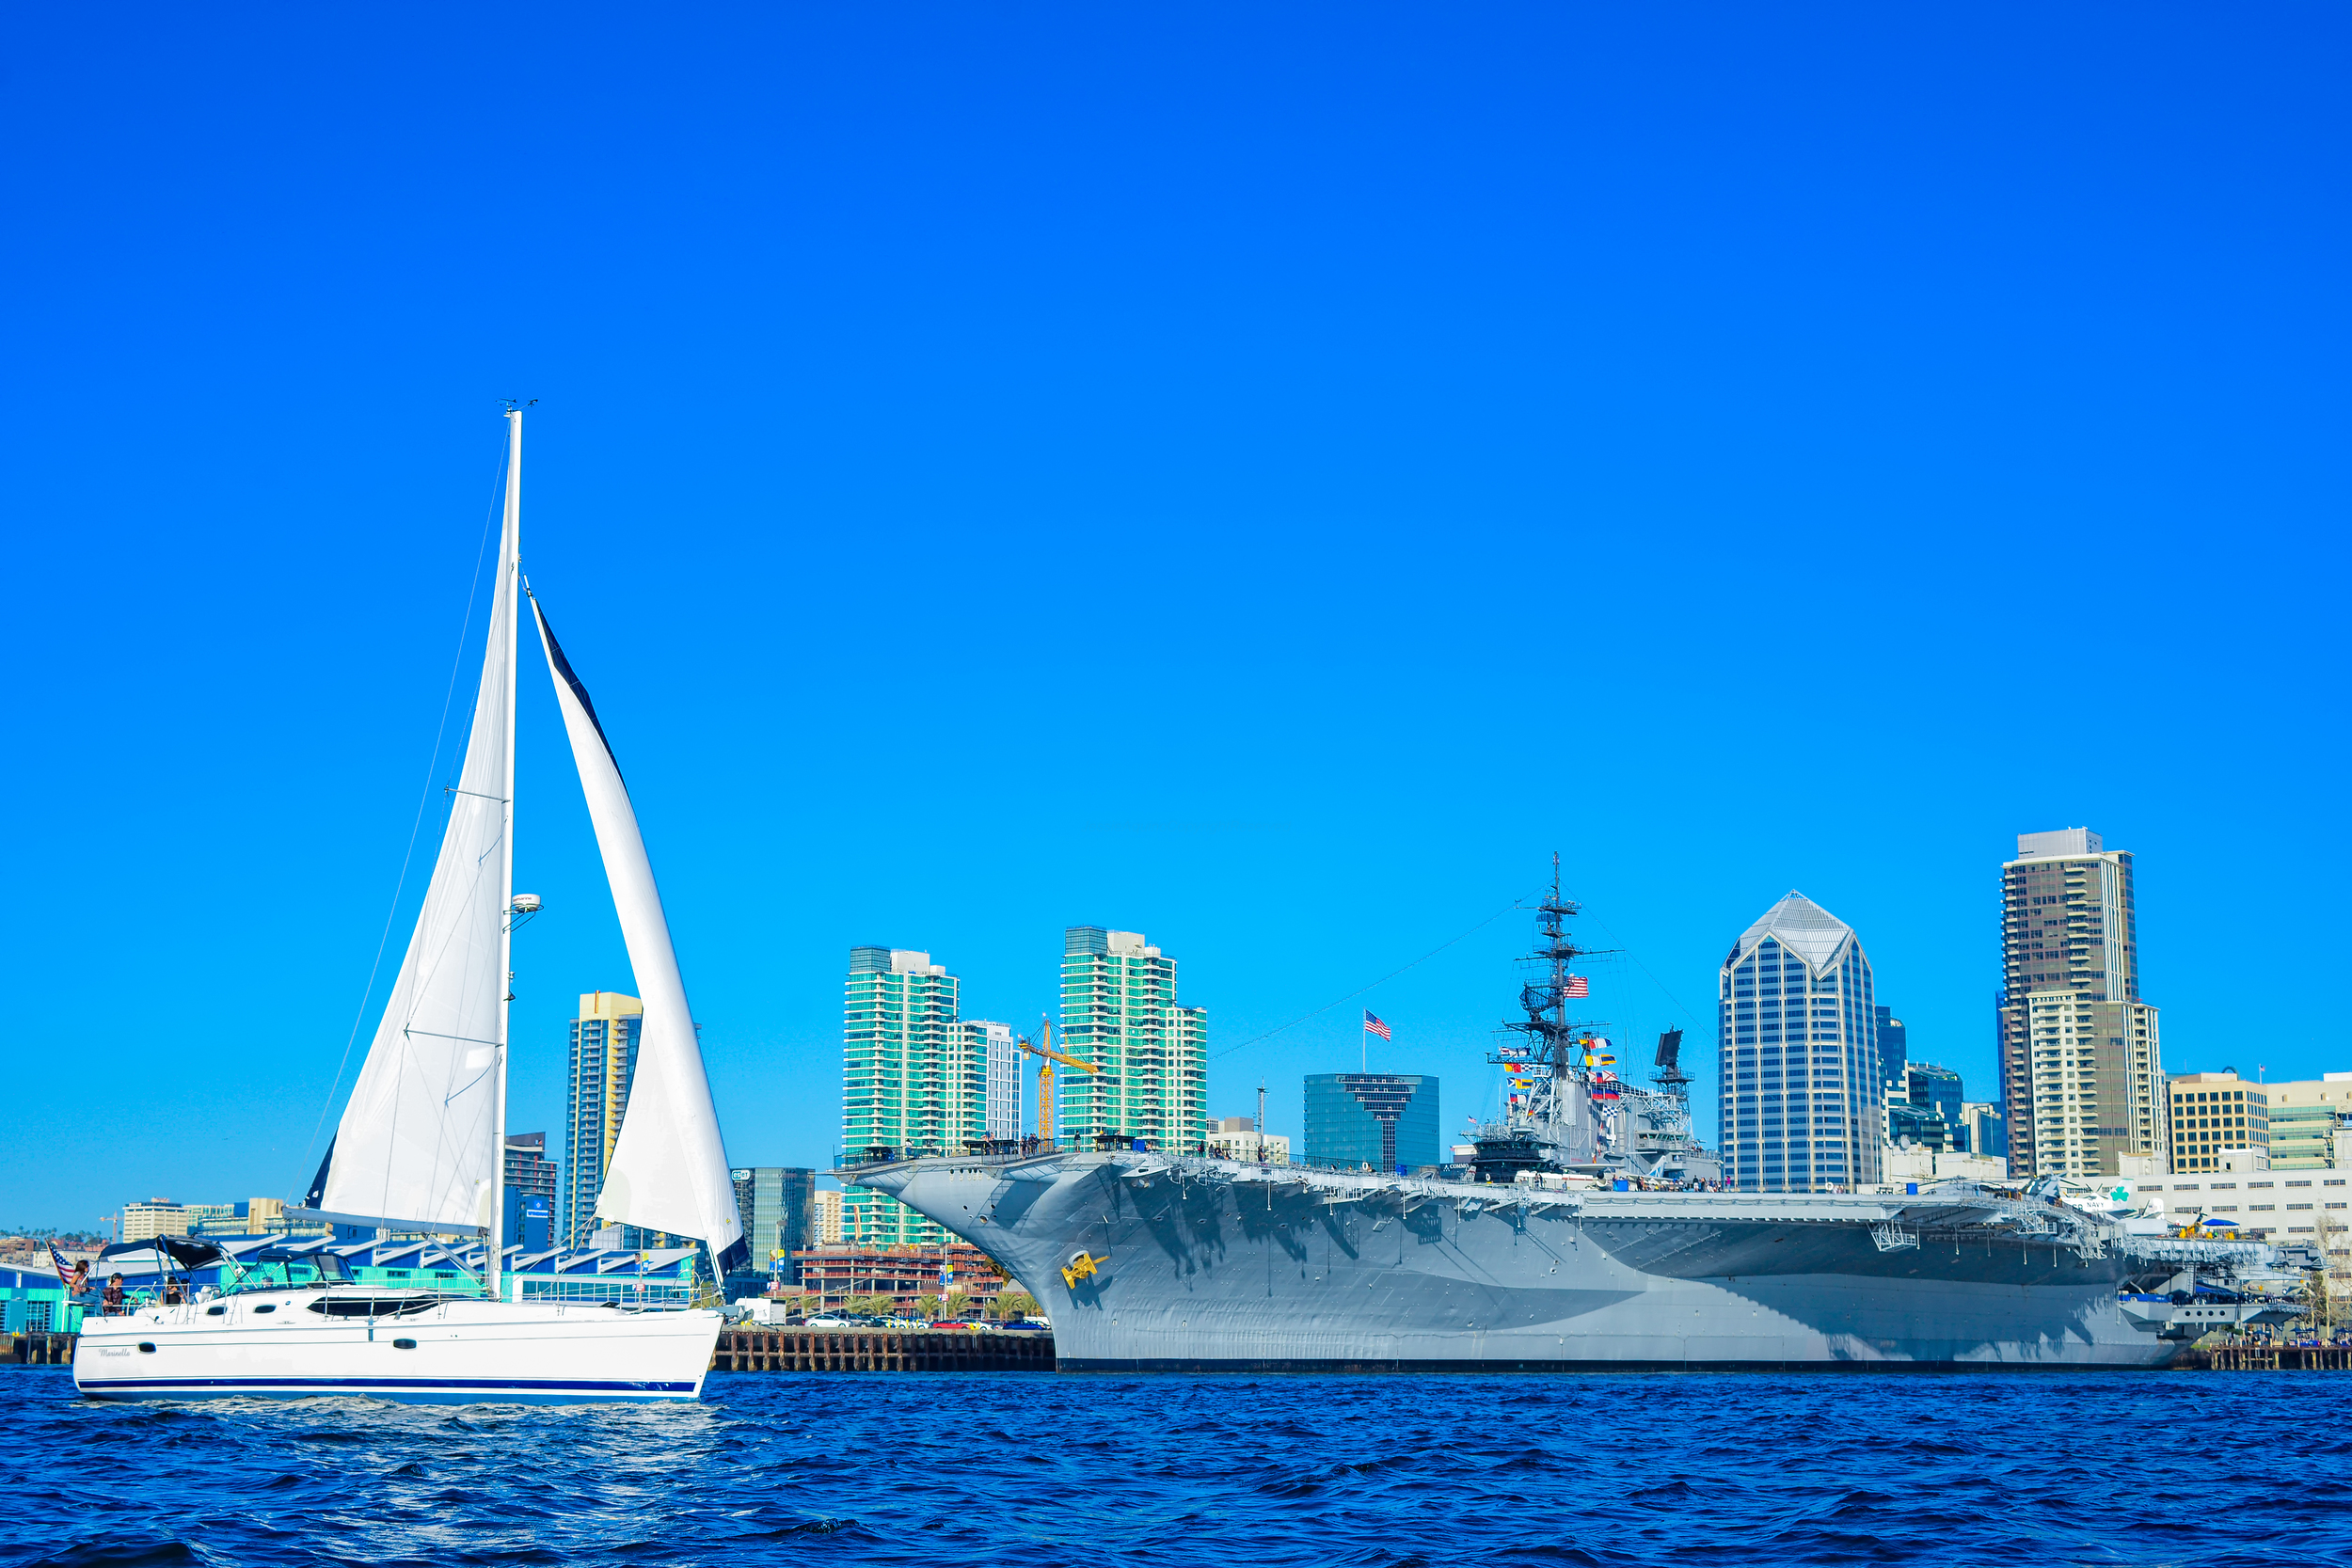 Sailing by the USS Midway in San Diego